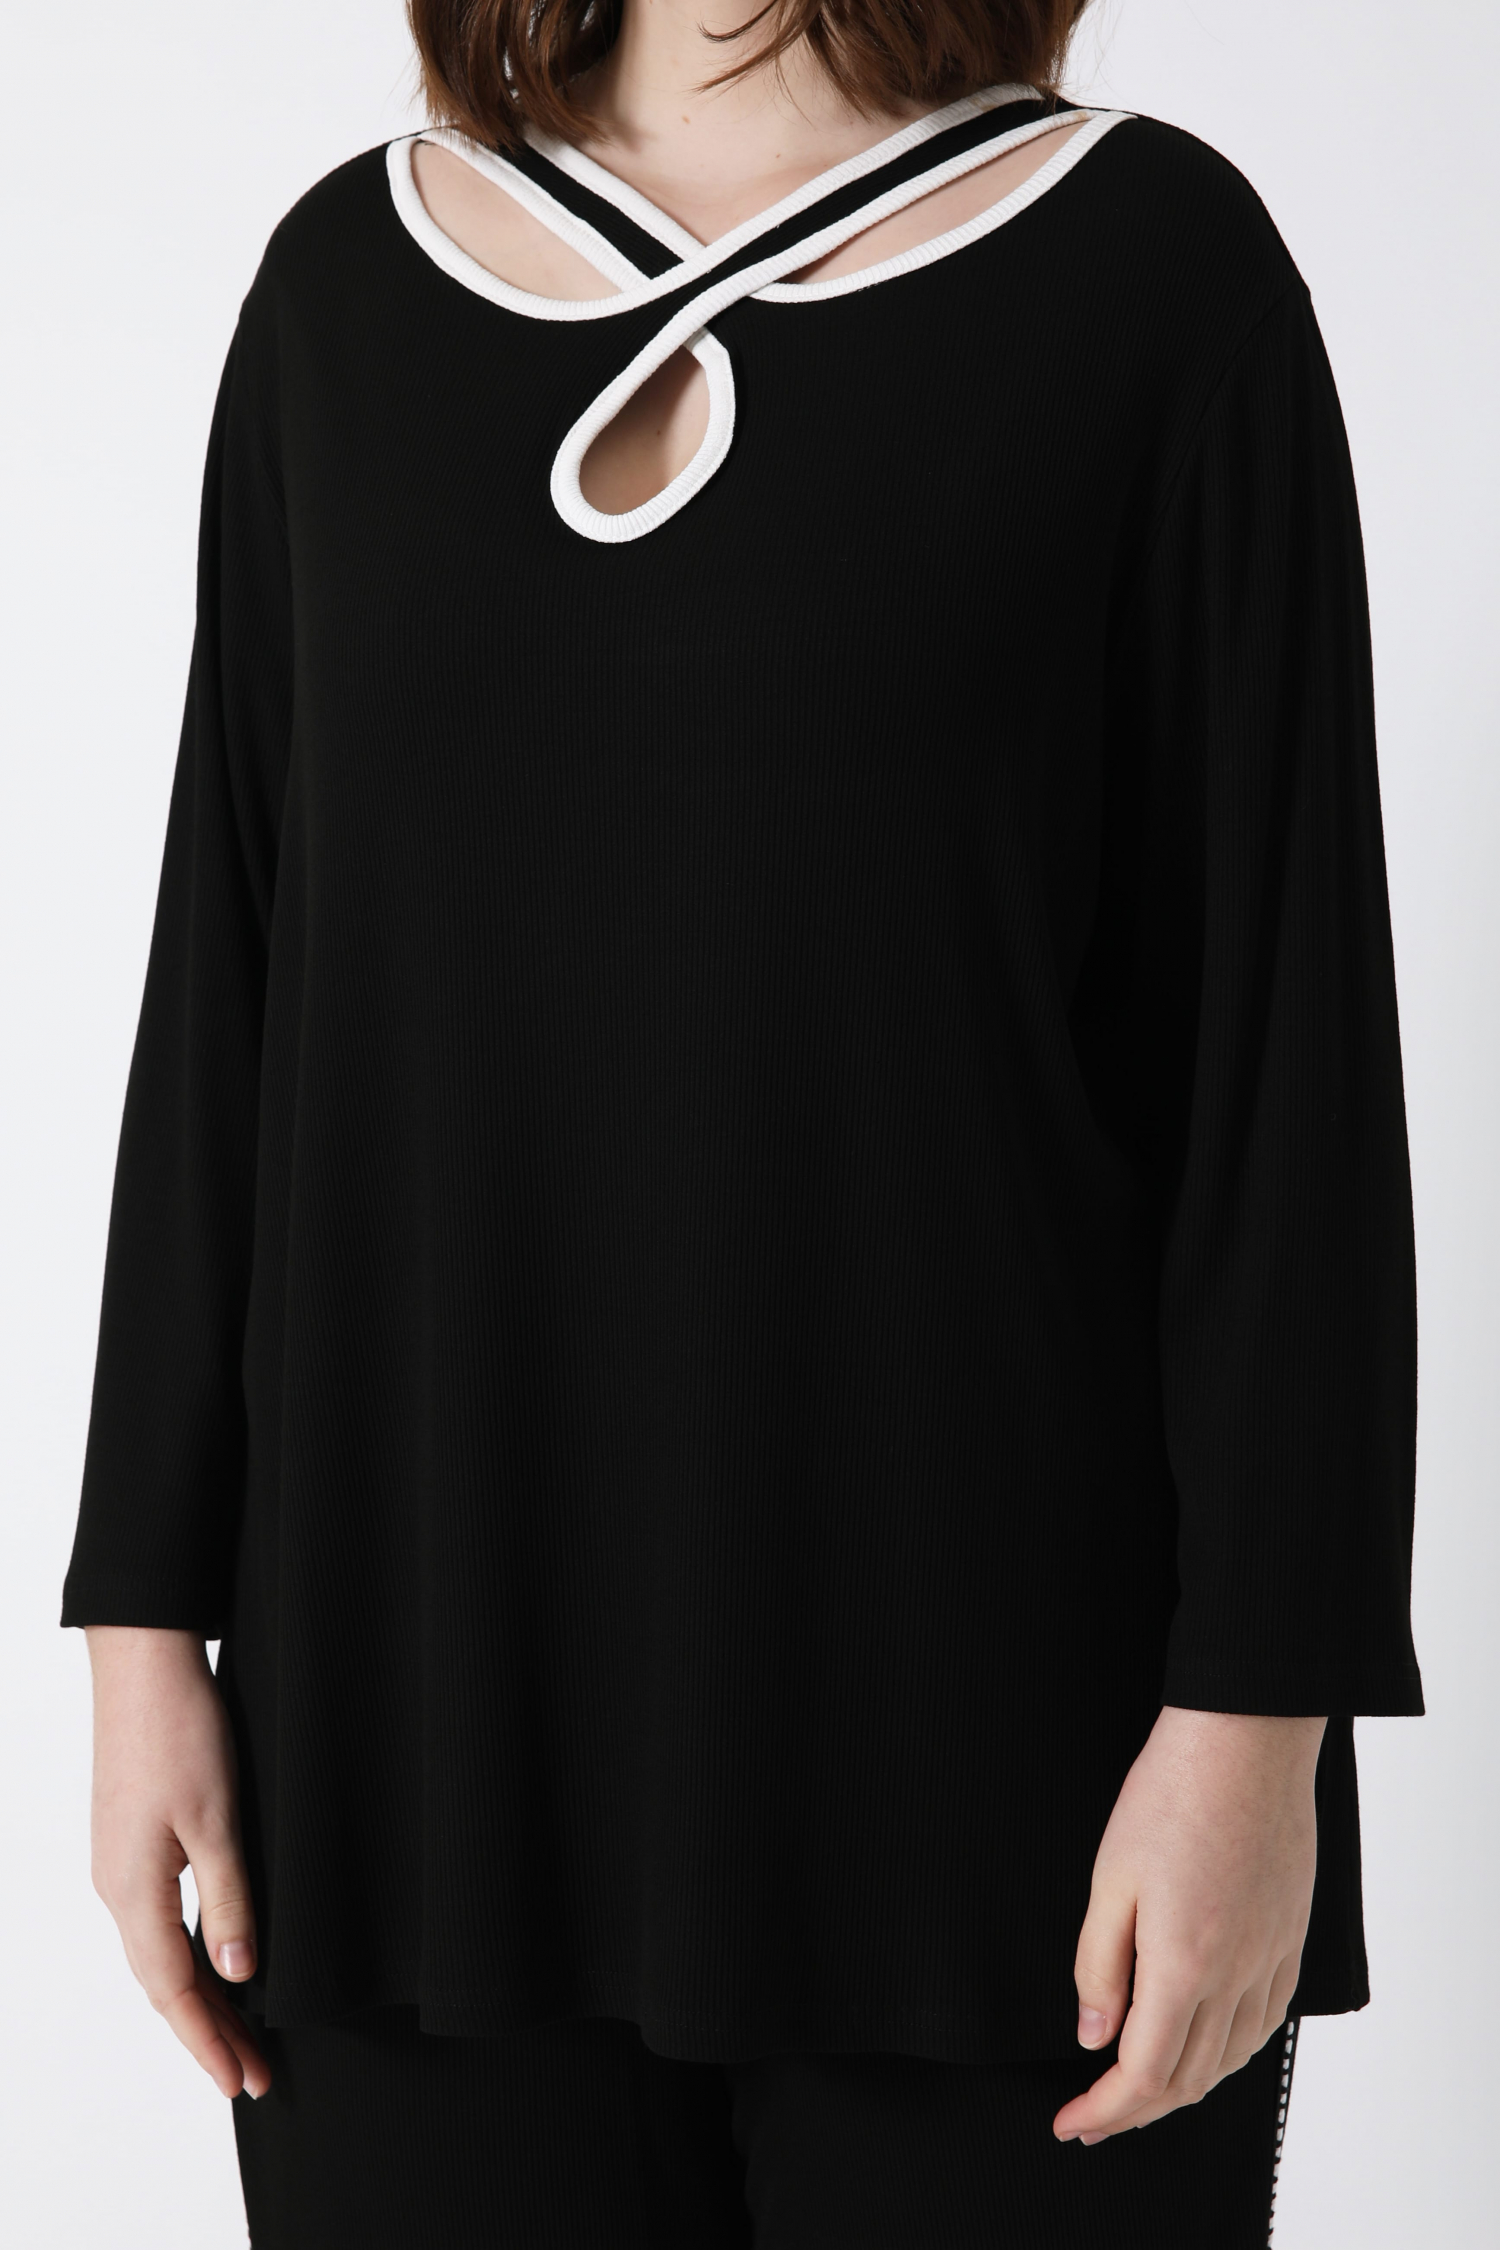 Ribbed tshirt with crossed neckline EXPEDITION 5/10 FEBRUARY 2021